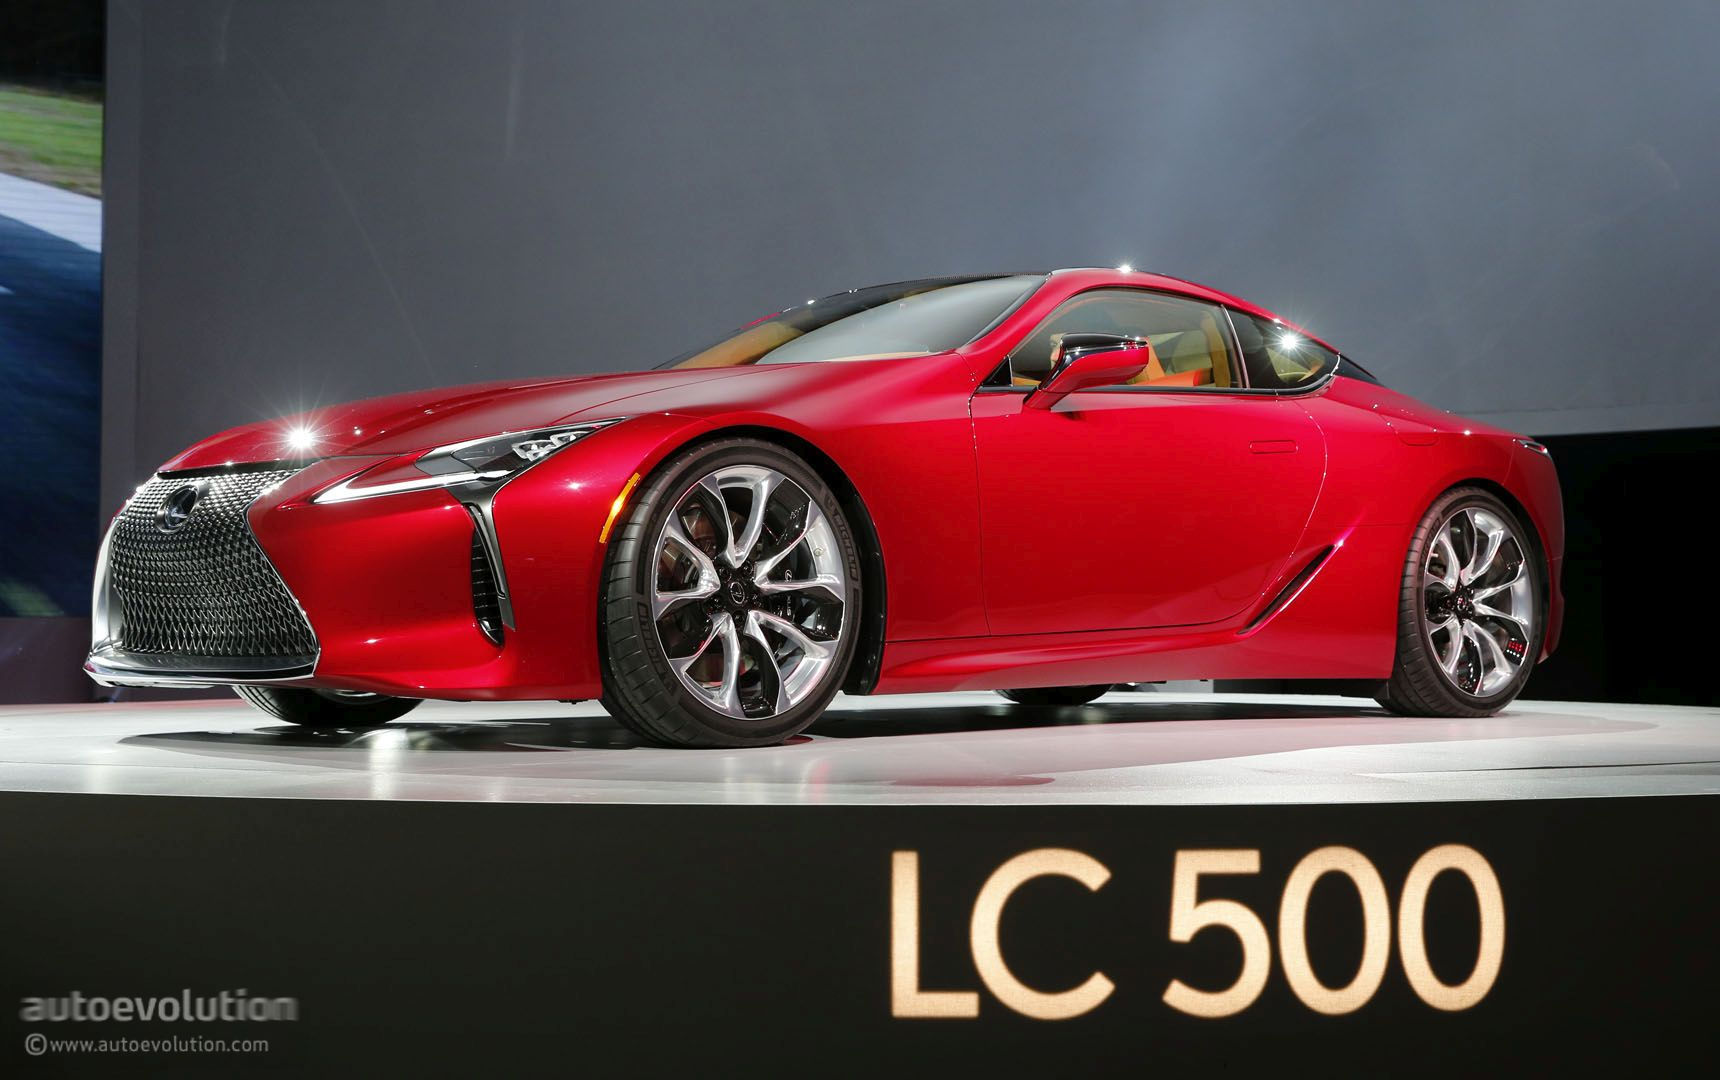 Lexus Ct F Sport 2017 >> Funky Lexus LC 500 Receives 2016 EyesOn Design Awards - autoevolution